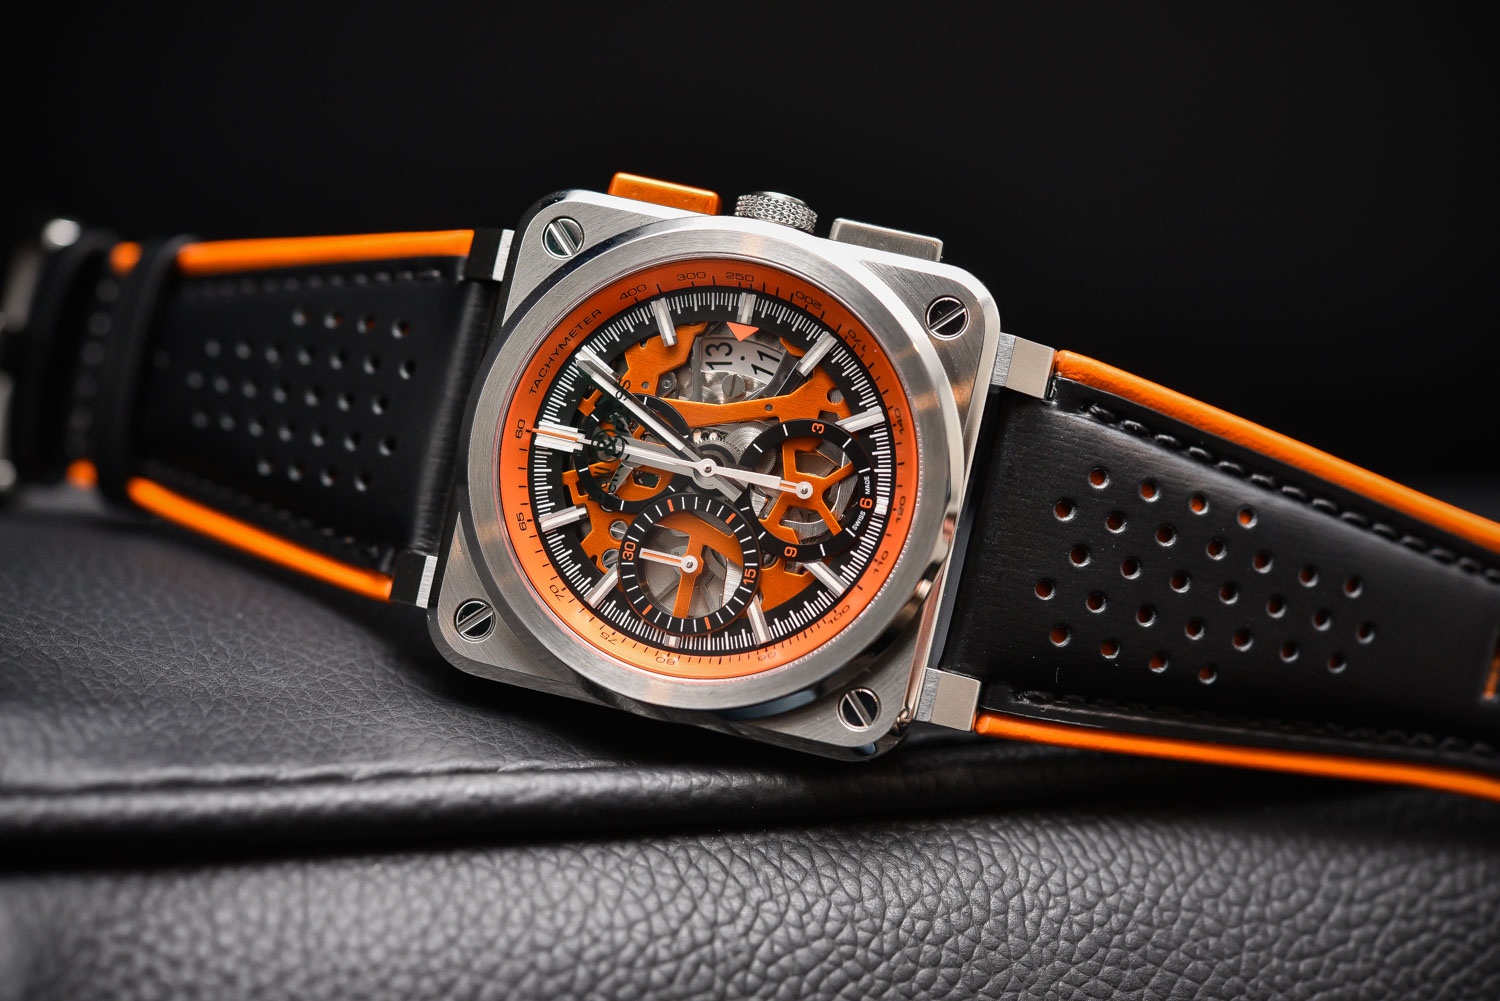 neue uhr bell ross br03 94 aerogt orange skeleton chronograph uhrforum. Black Bedroom Furniture Sets. Home Design Ideas